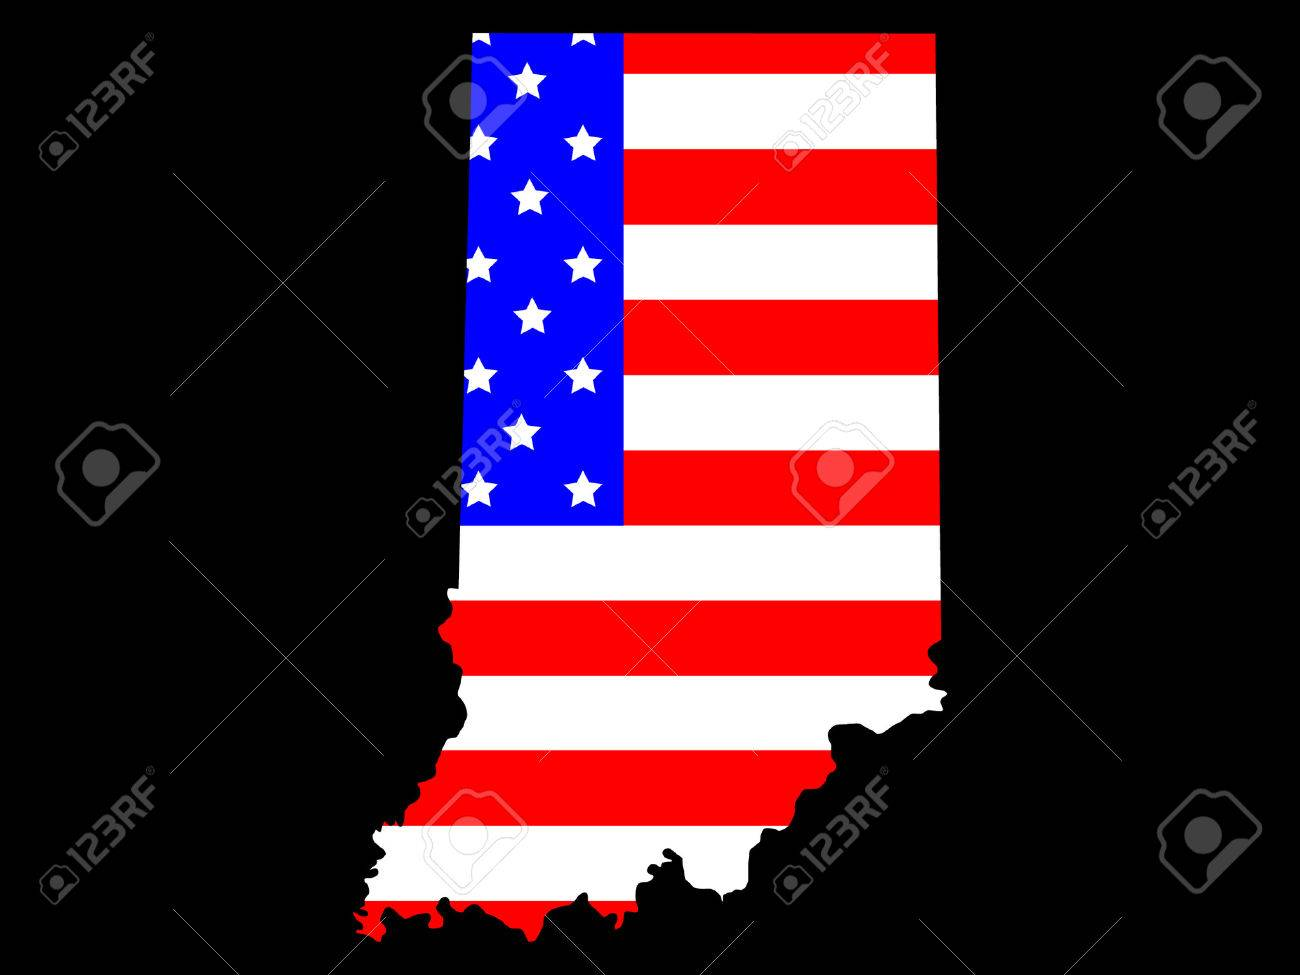 Map Of The State Of Indiana And American Flag Royalty Free - Indiana on a map of the usa